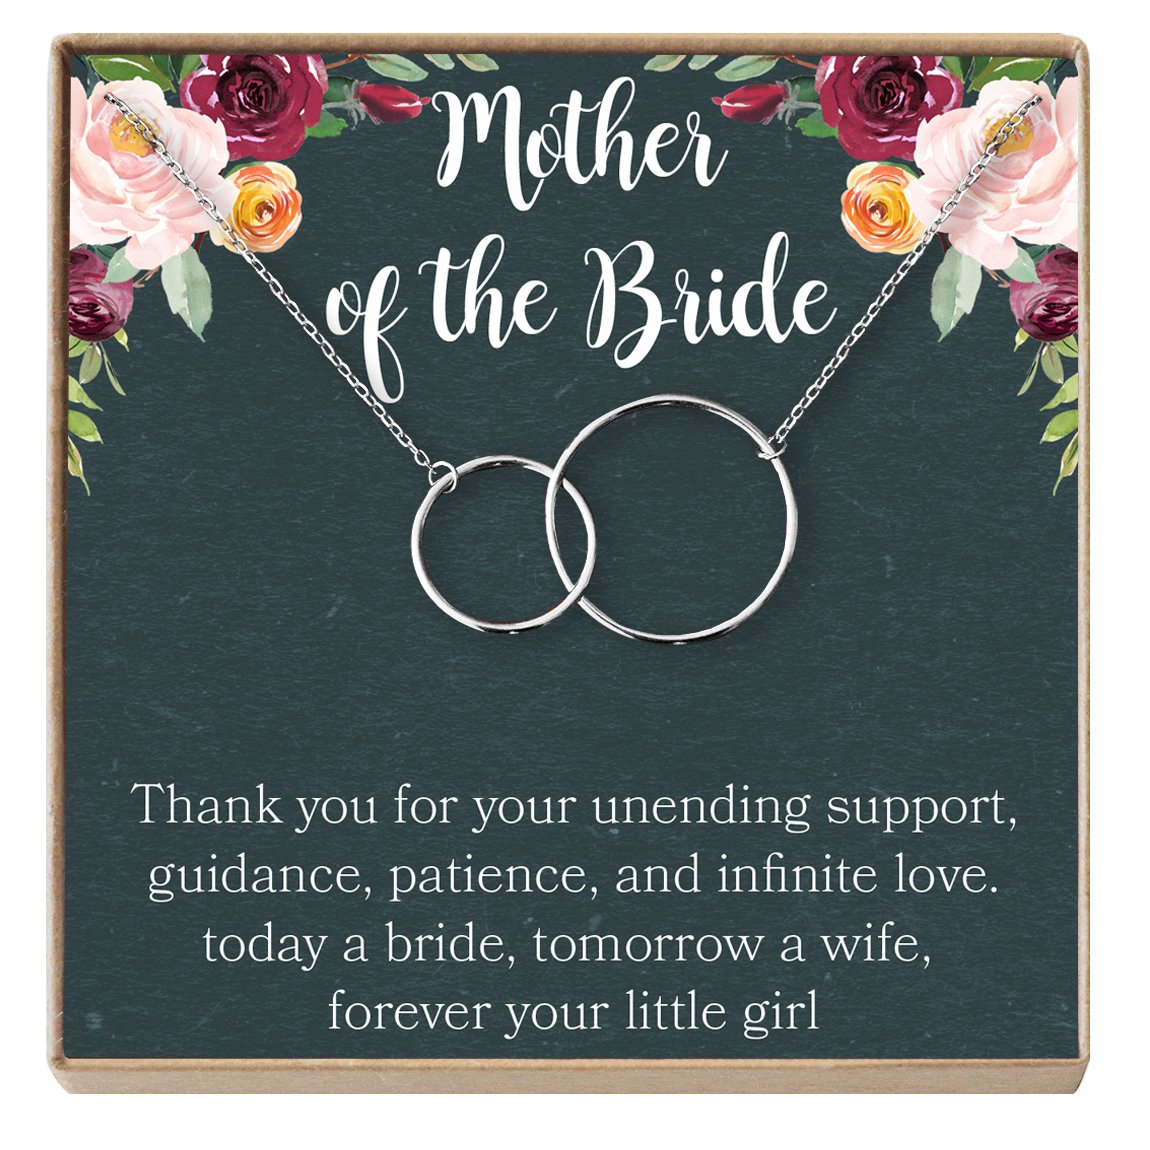 Mother of The Bride Gift Necklace: Wedding Gift, Bridal Party, Rehearsal Dinner, Woman of My Dreams, Parent of Bride (Silver-Plated-Brass, NA) by Dear Ava